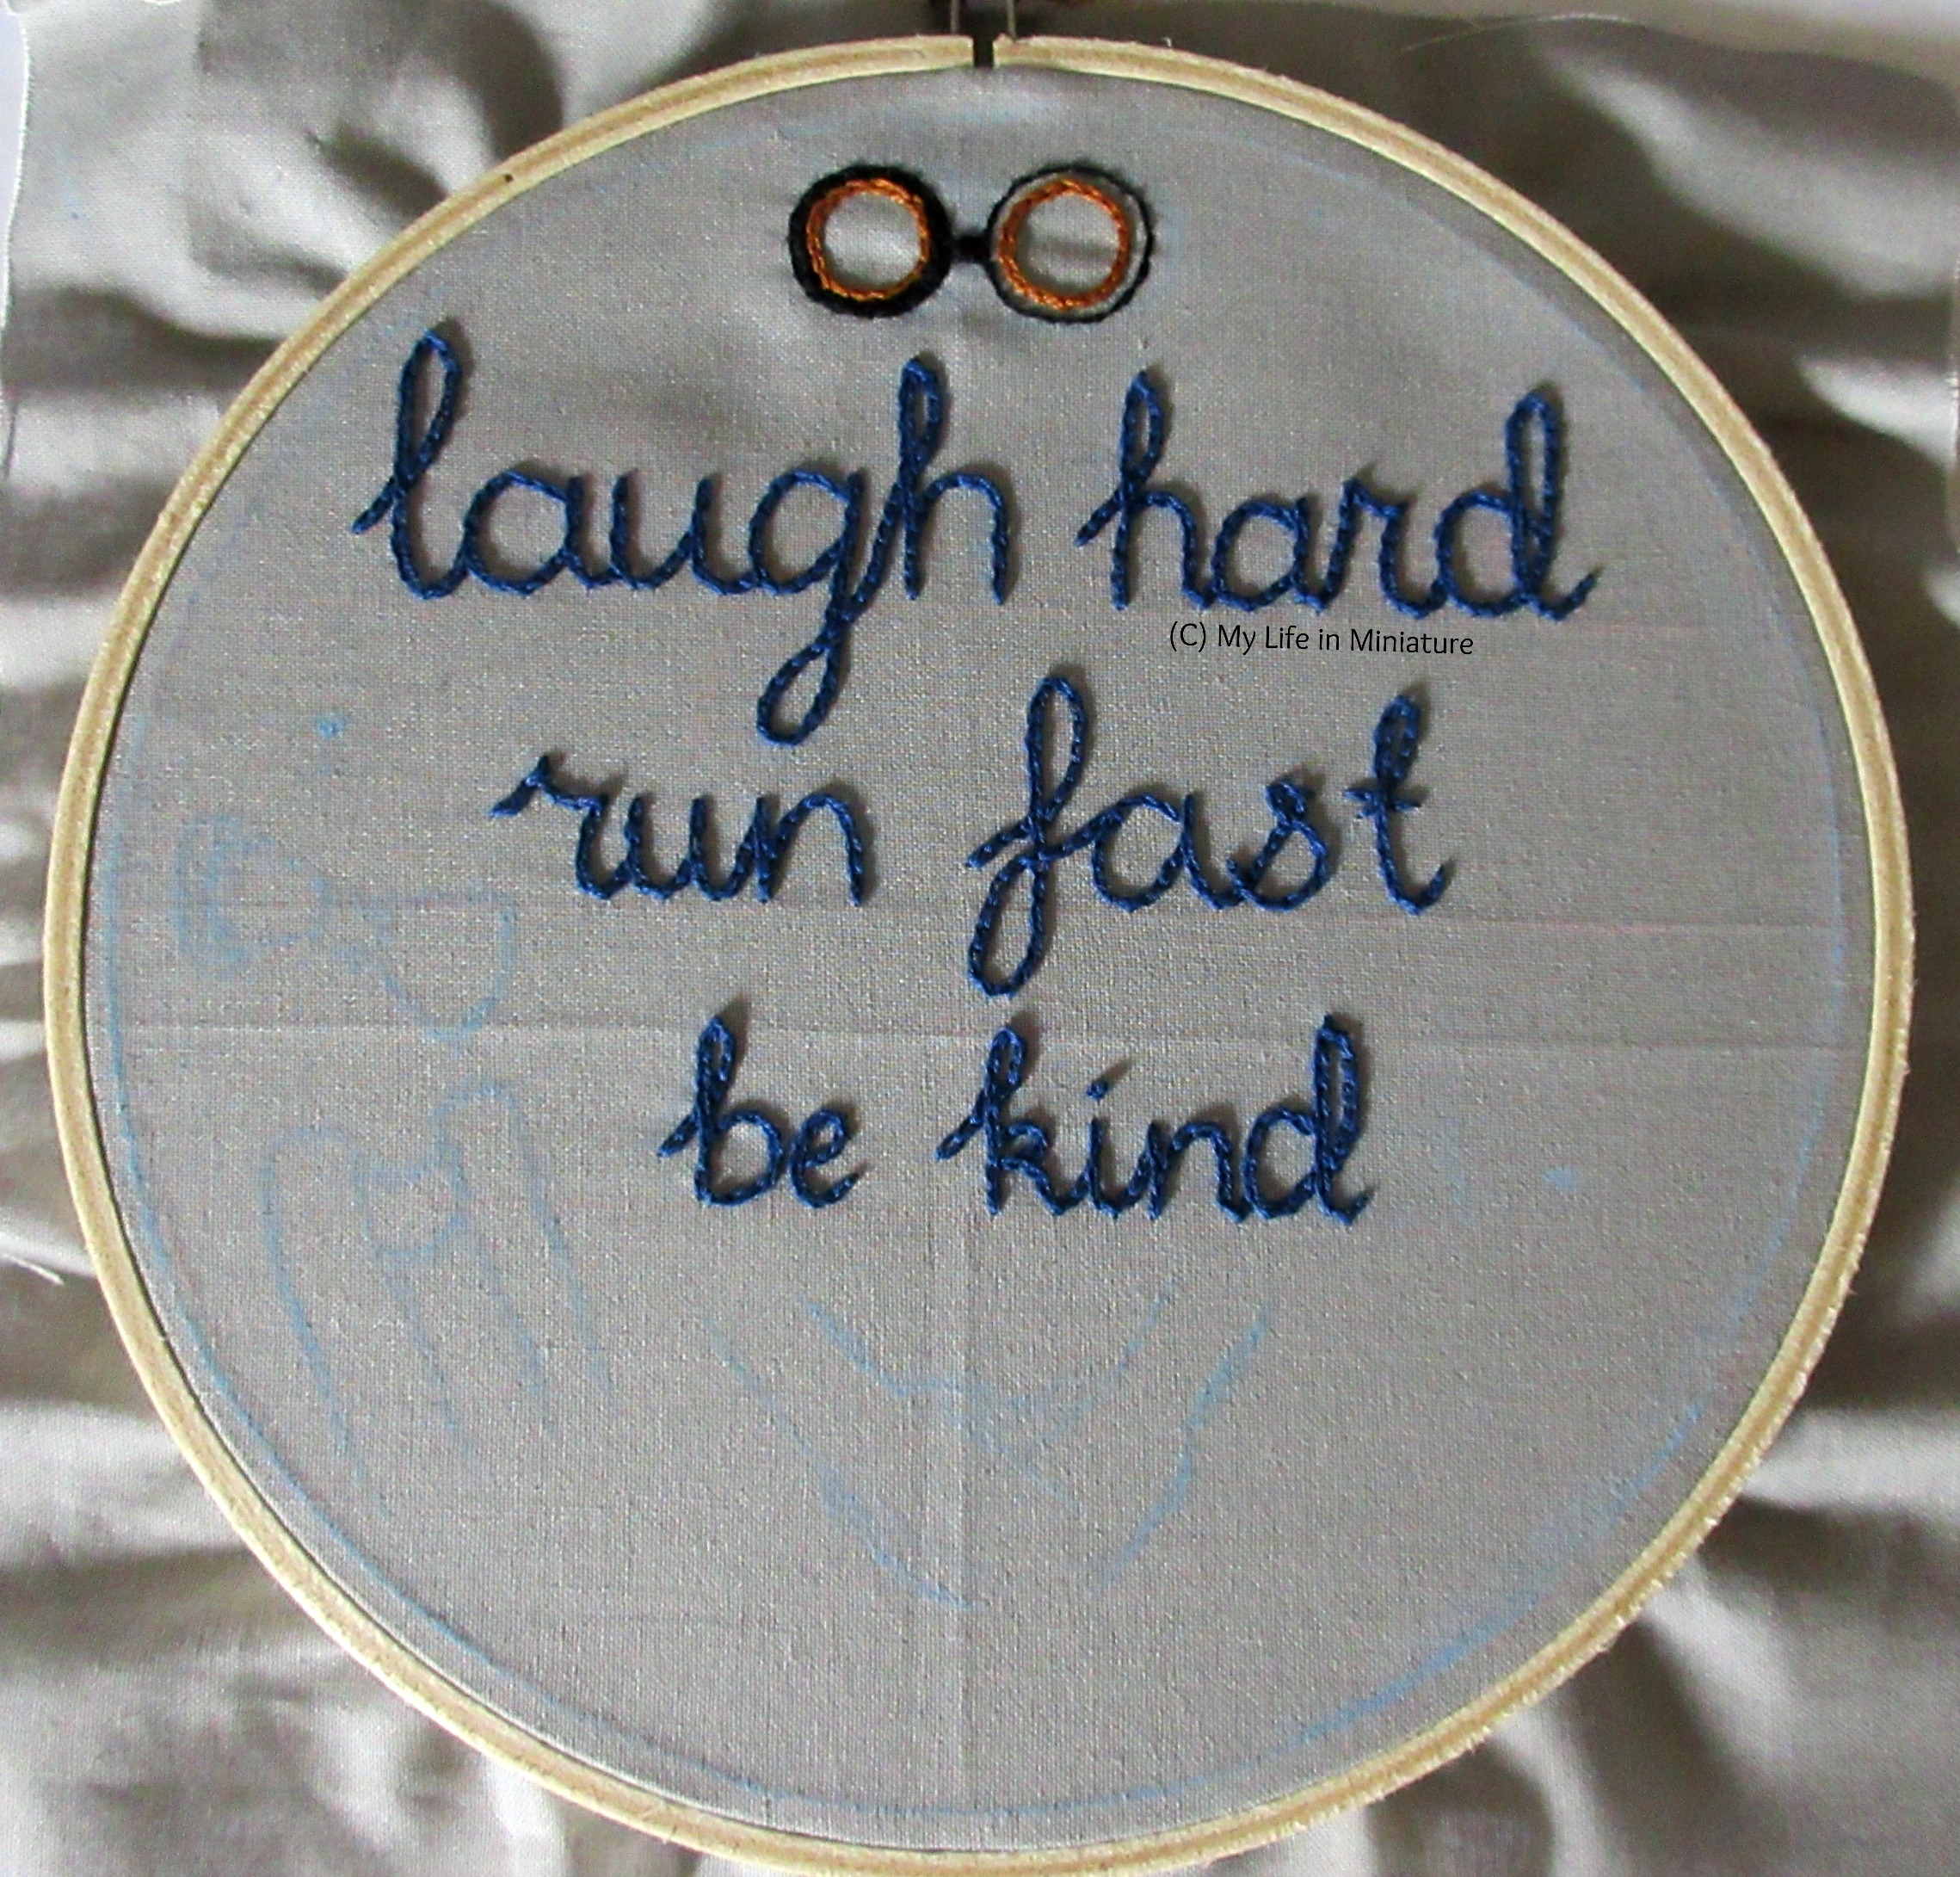 An embroidery hoop fills the image, strung with grey fabric. The phrase 'laugh hard; run fast; be kind' is stitched across the top two-thirds in dark blue chain stitch. Above 'laugh hard' is the beginnings of the eyepieces of some steampunk black and gold goggles.